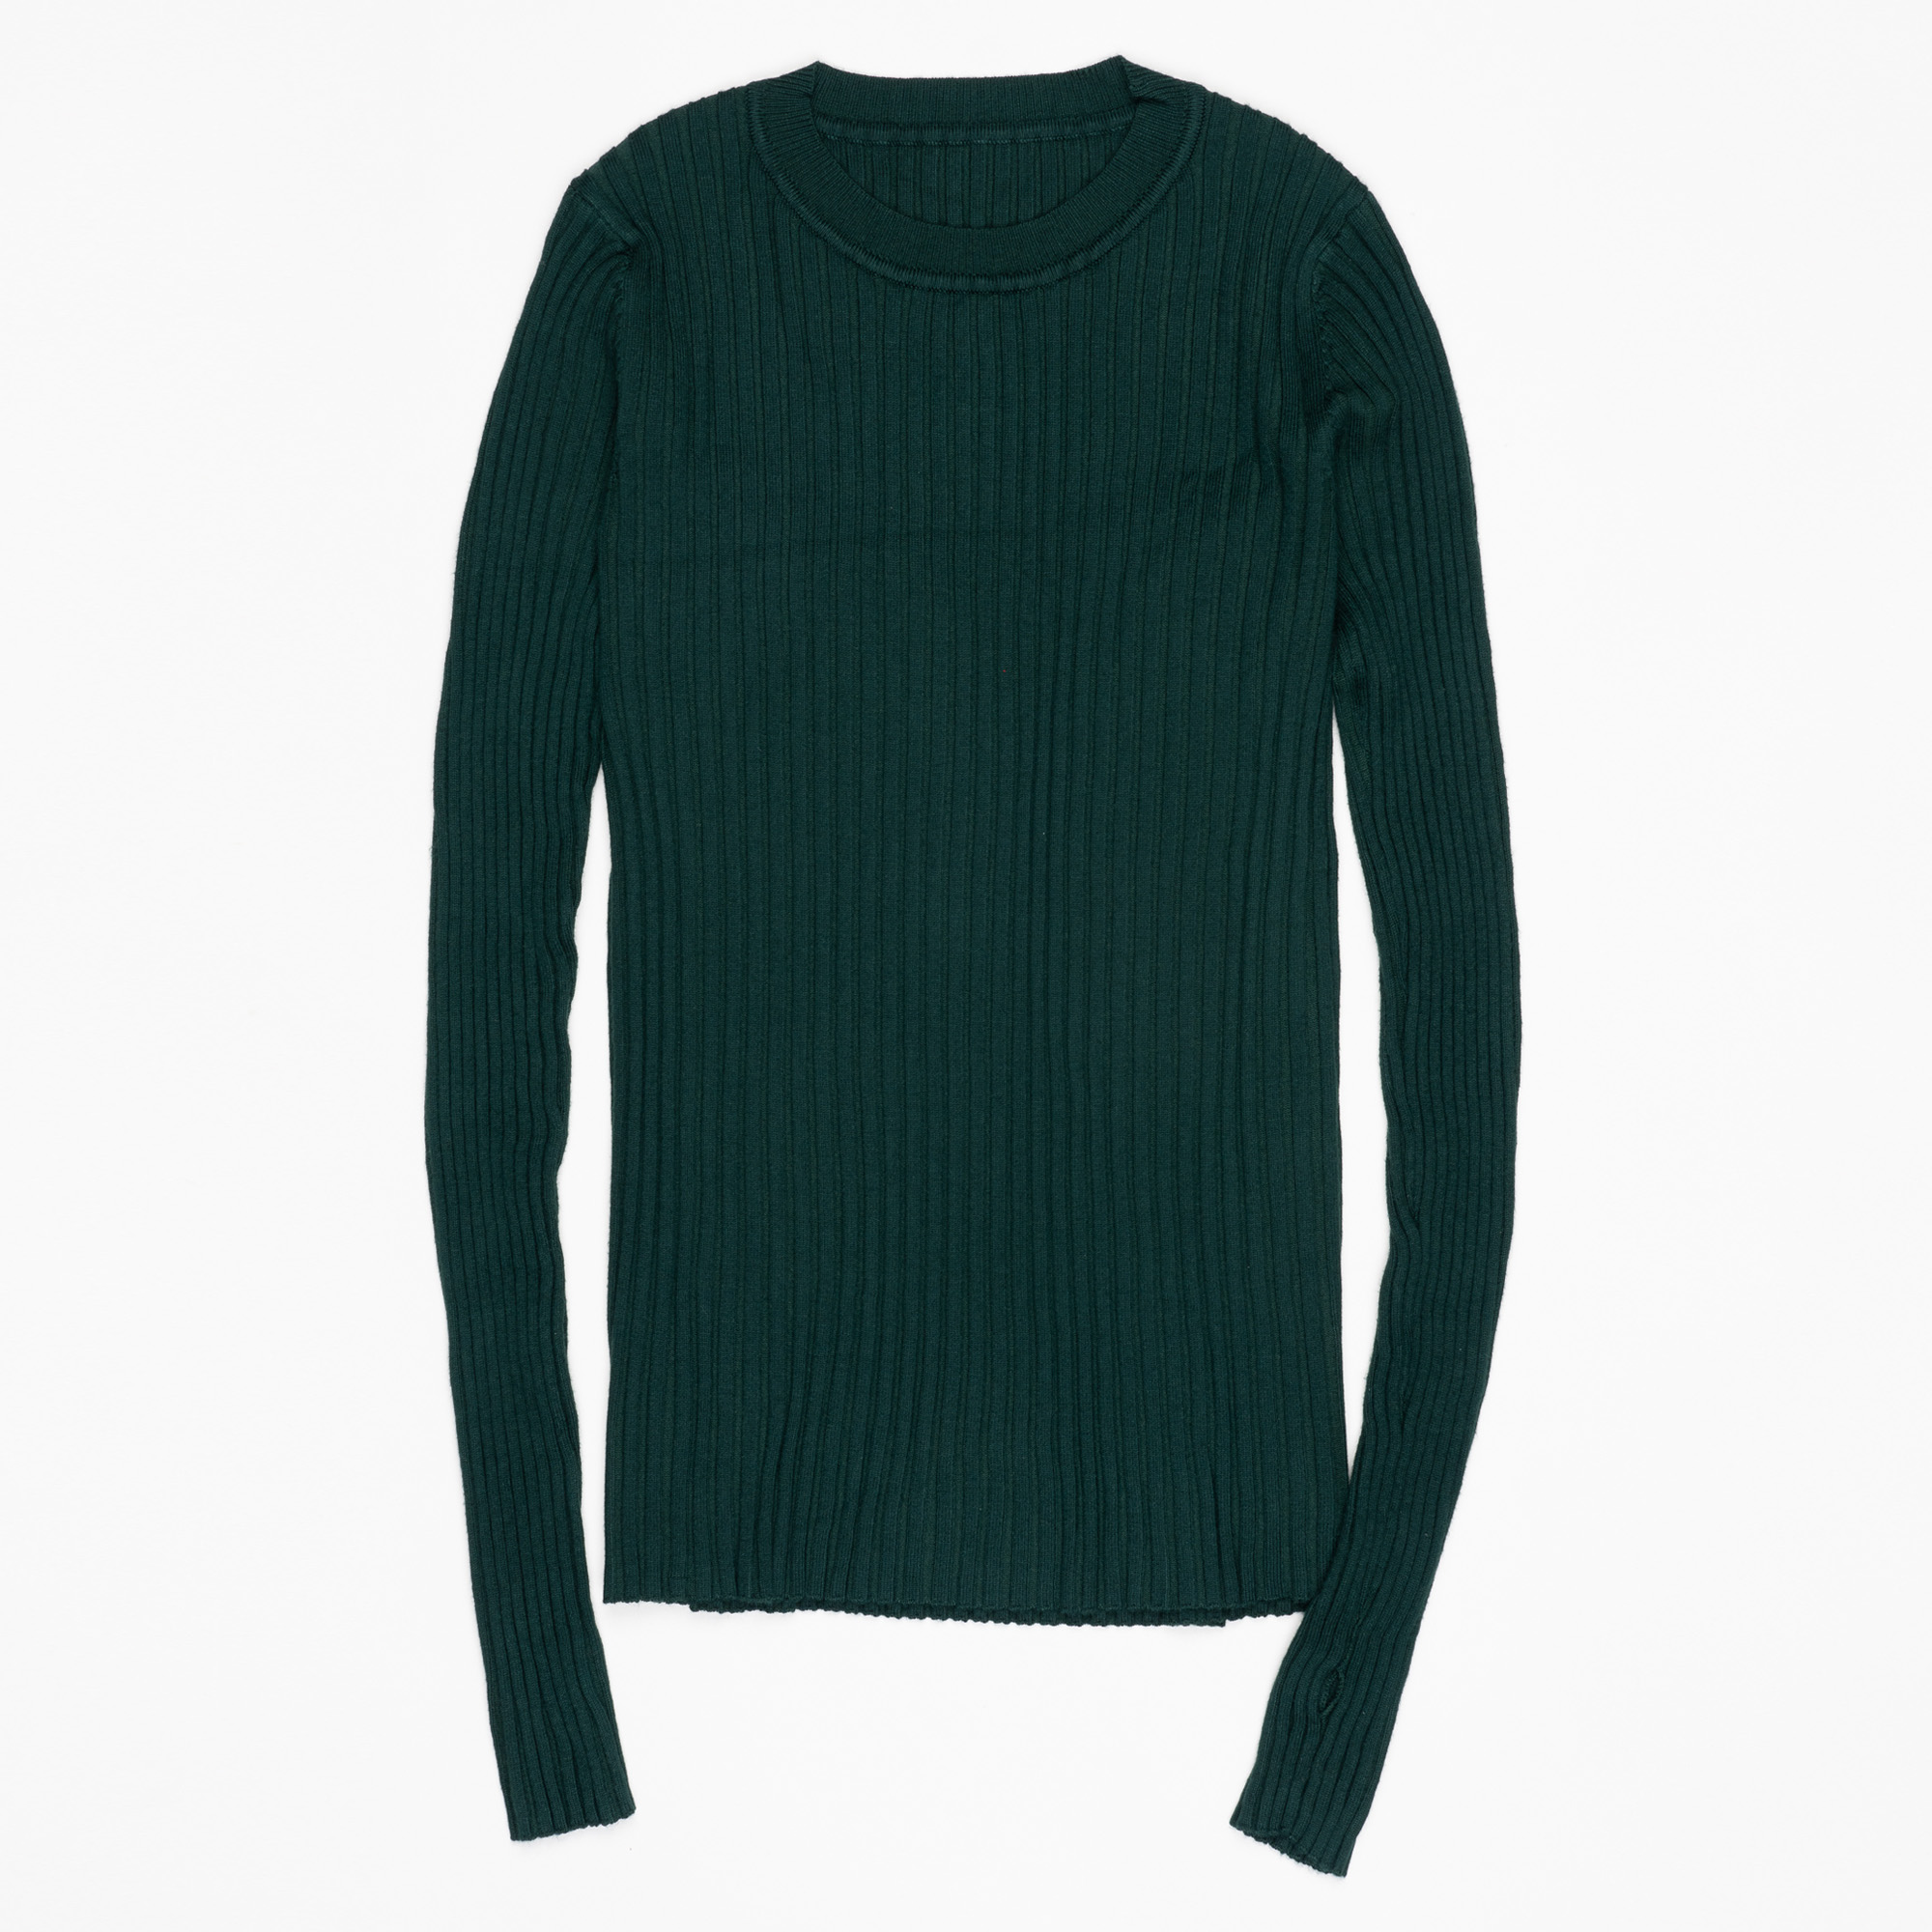 Women Sweater Pullover Basic Ribbed Sweaters Cotton Tops Knitted Solid Crew Neck With Thumb Hole 25